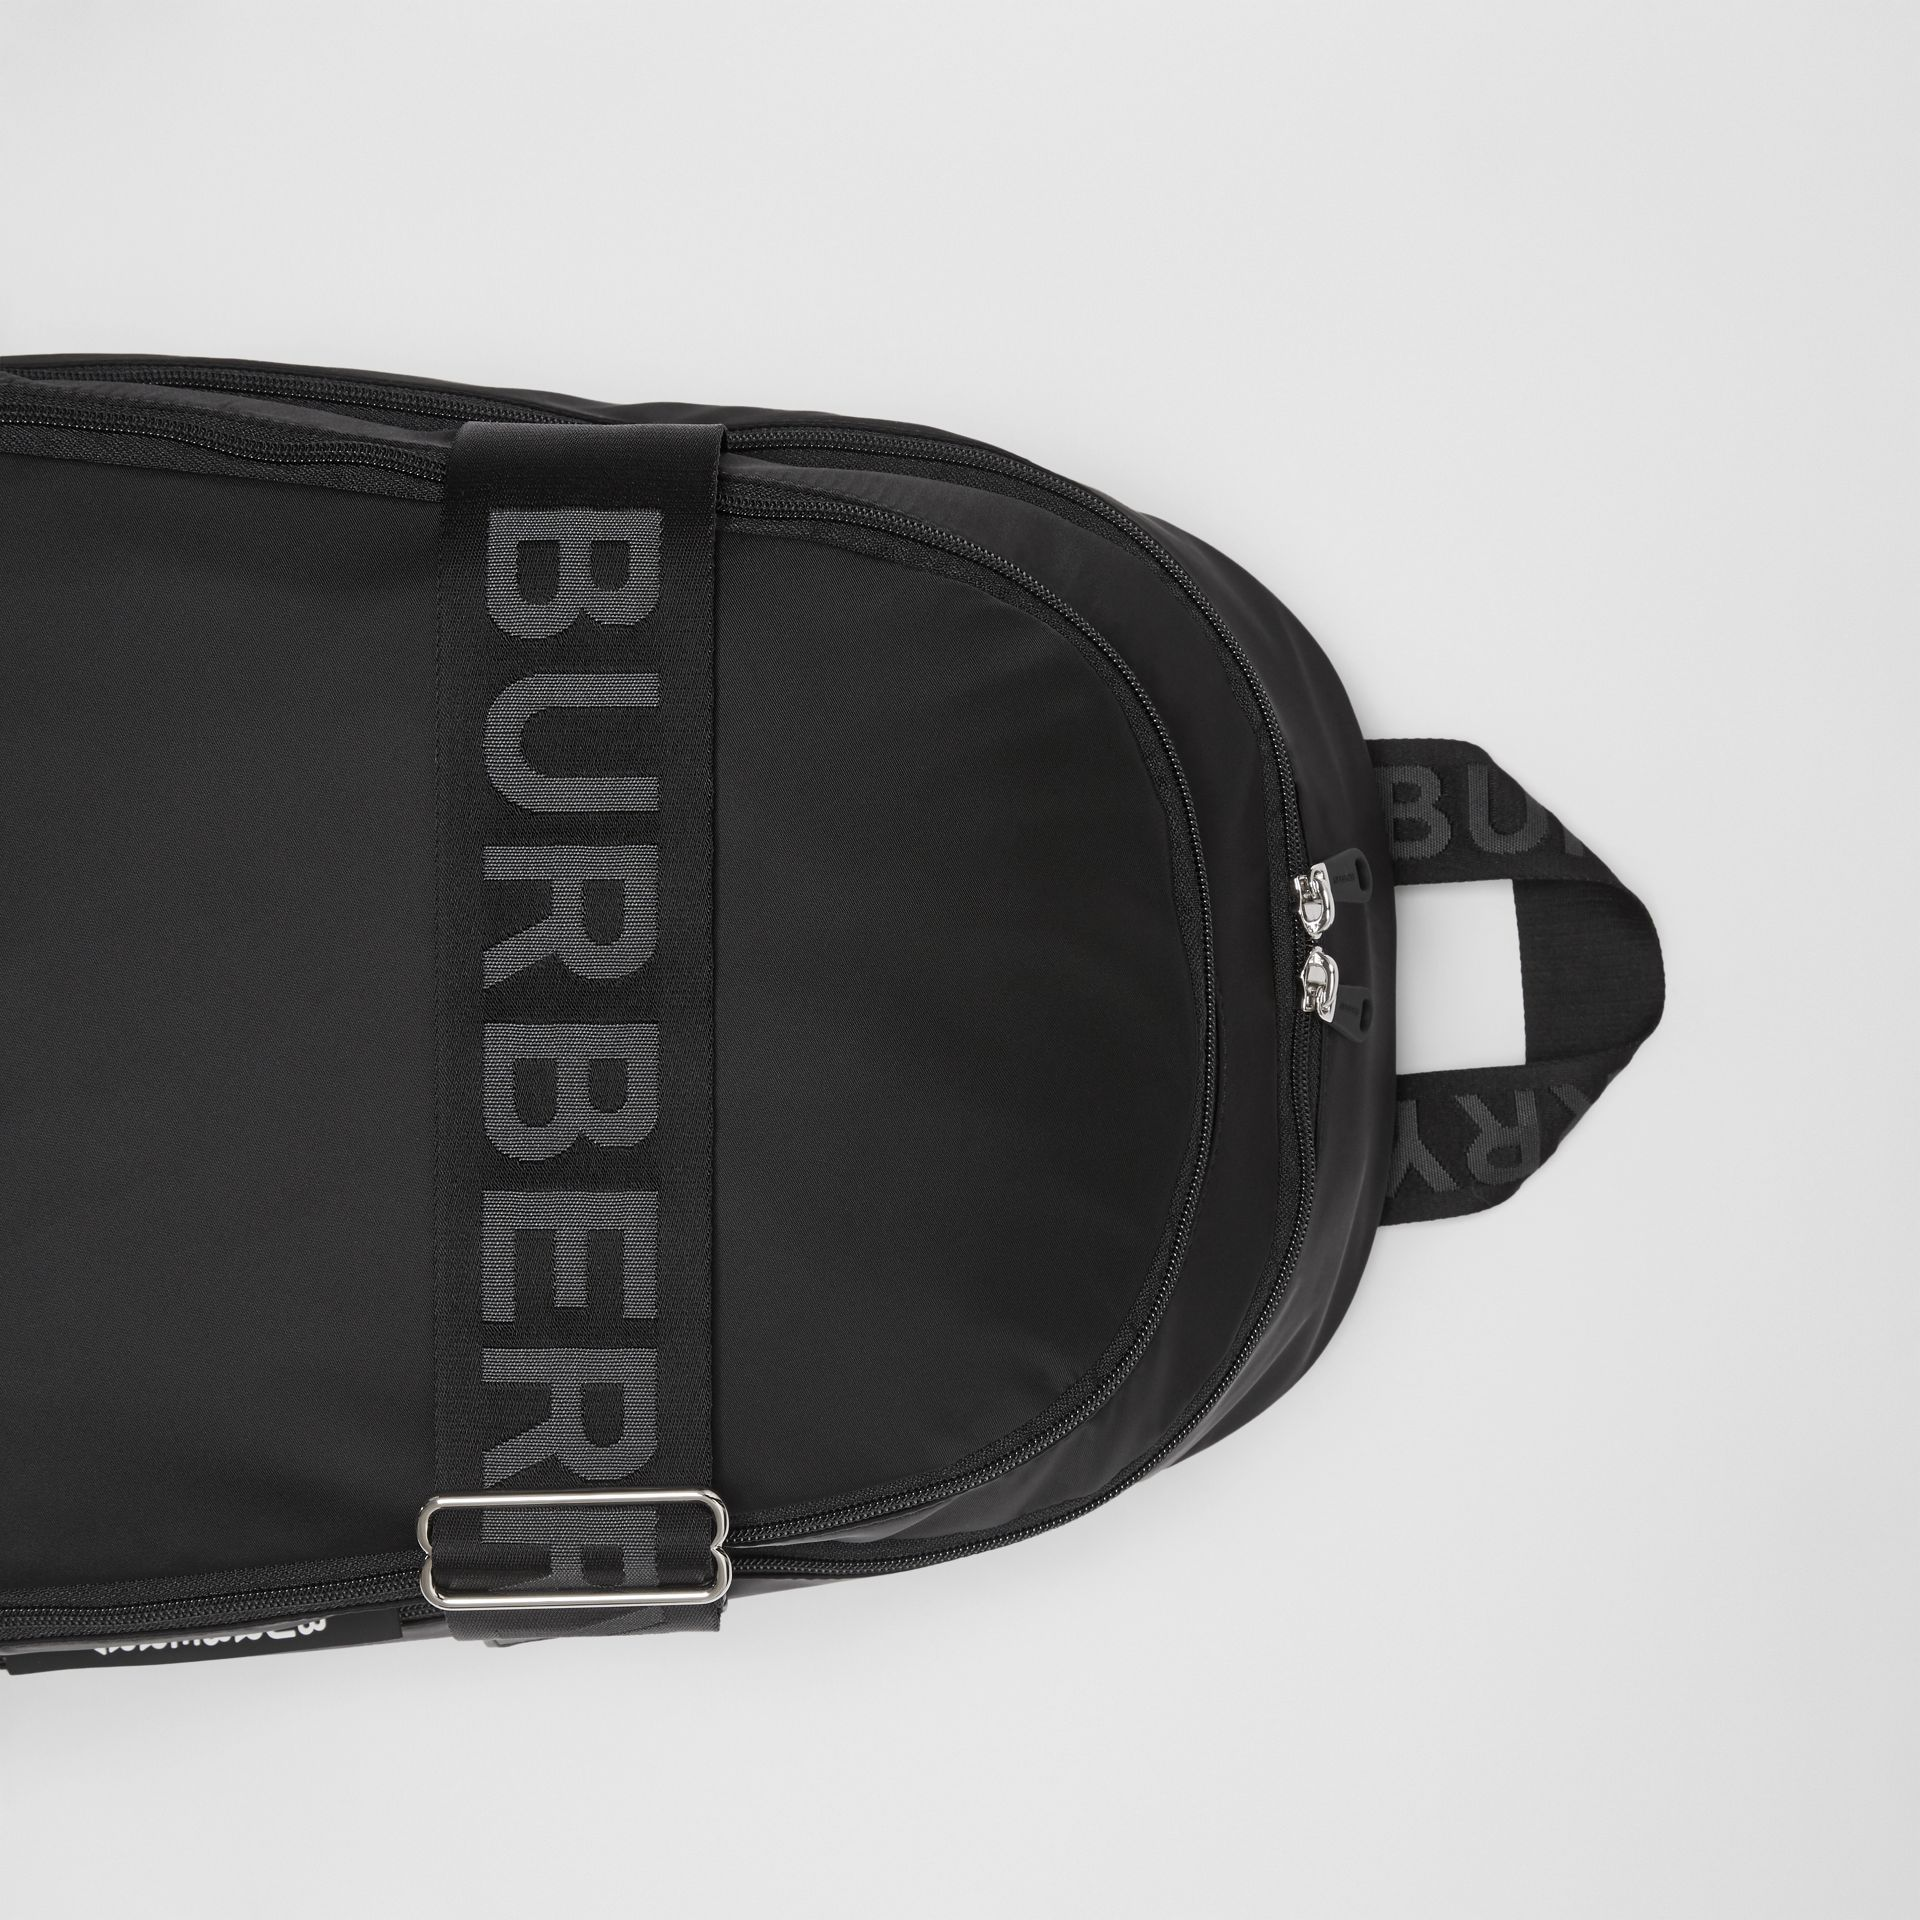 Grand sac à dos en nylon avec logos (Noir) - Homme | Burberry - photo de la galerie 1